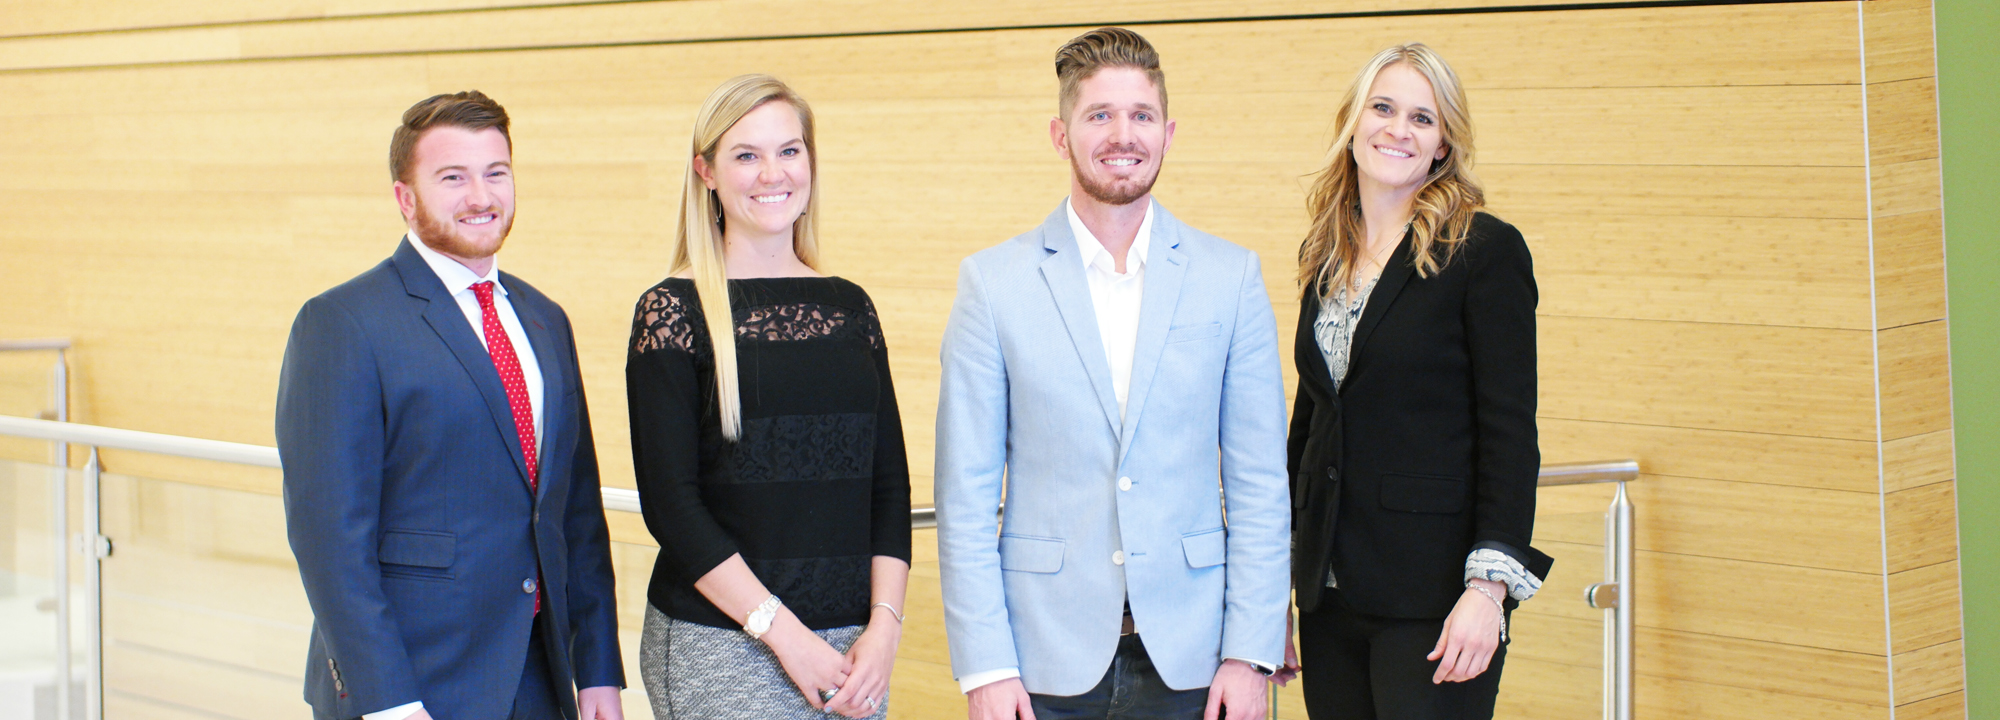 MRED students pose professionally